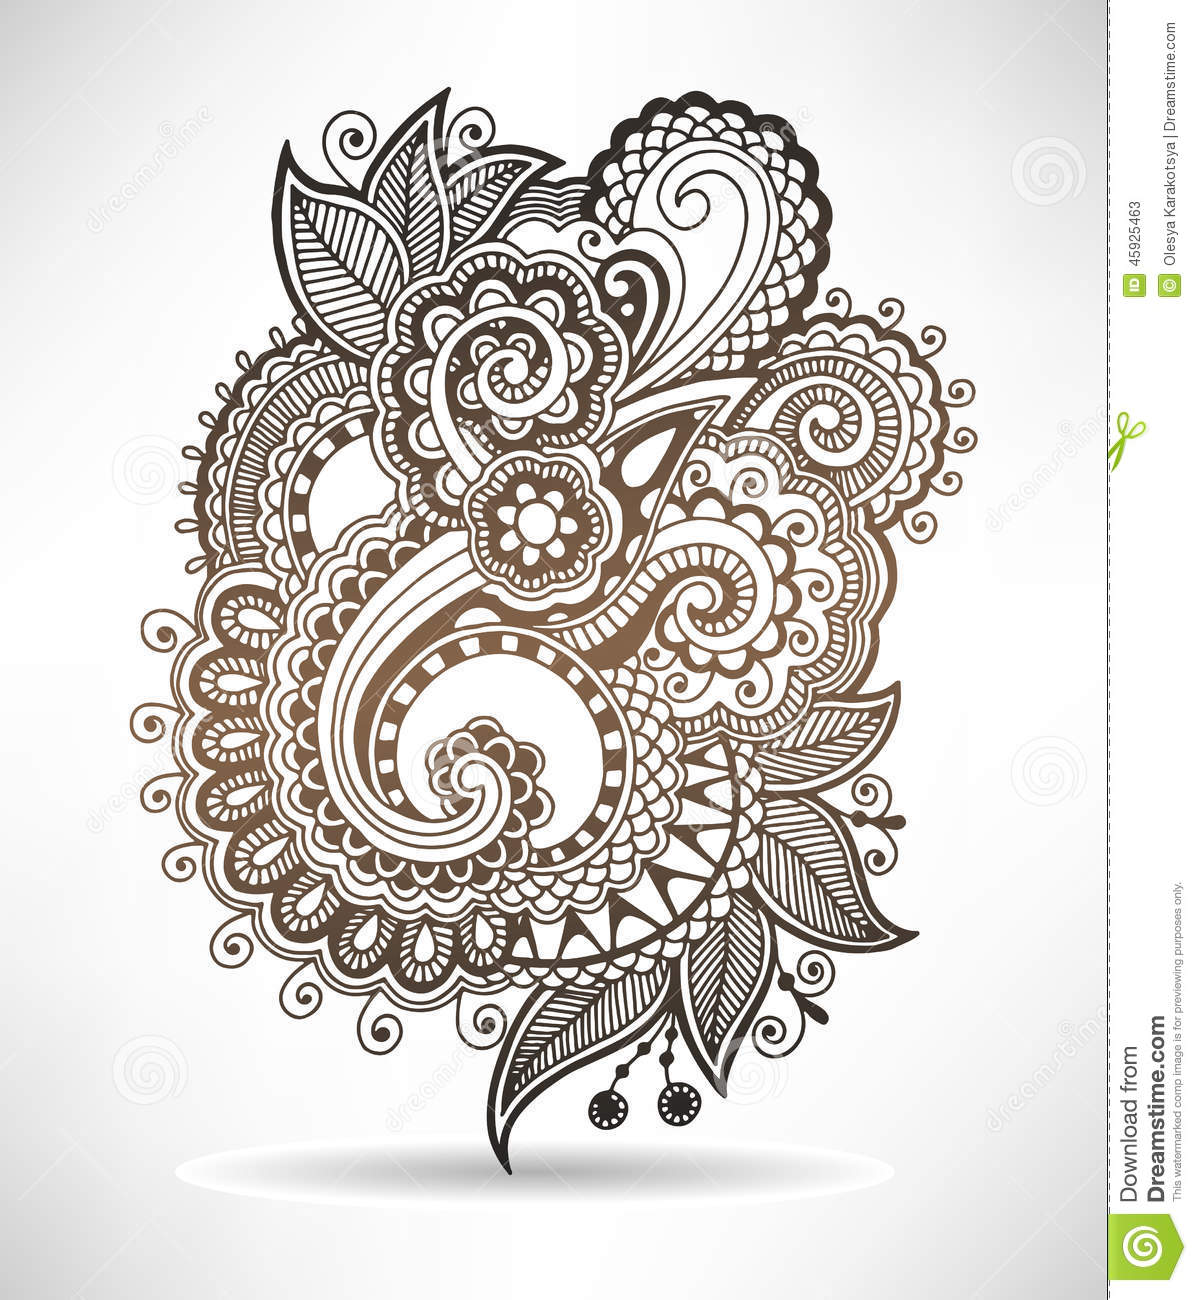 Line Art Poster Design : Line art ornate flower design ukrainian ethnic stock